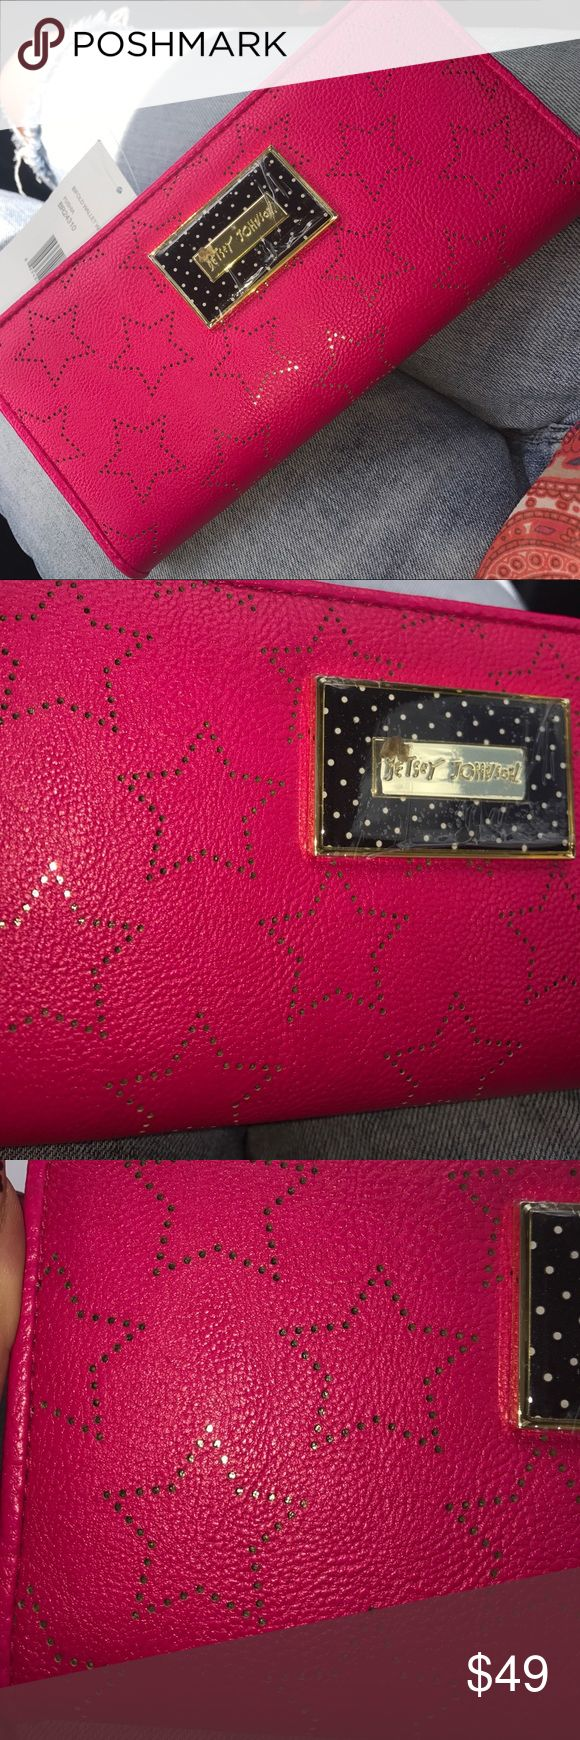 Betsey Johnson fushia stars bifold w/ insert Pink and gold betsey Johnson perforated stars bifold wallet, with faux leather insert. NWT. MSRP $58 **imperfection on plastic coating over nameplate; leaving in tact until purchased Betsey Johnson Bags Wallets